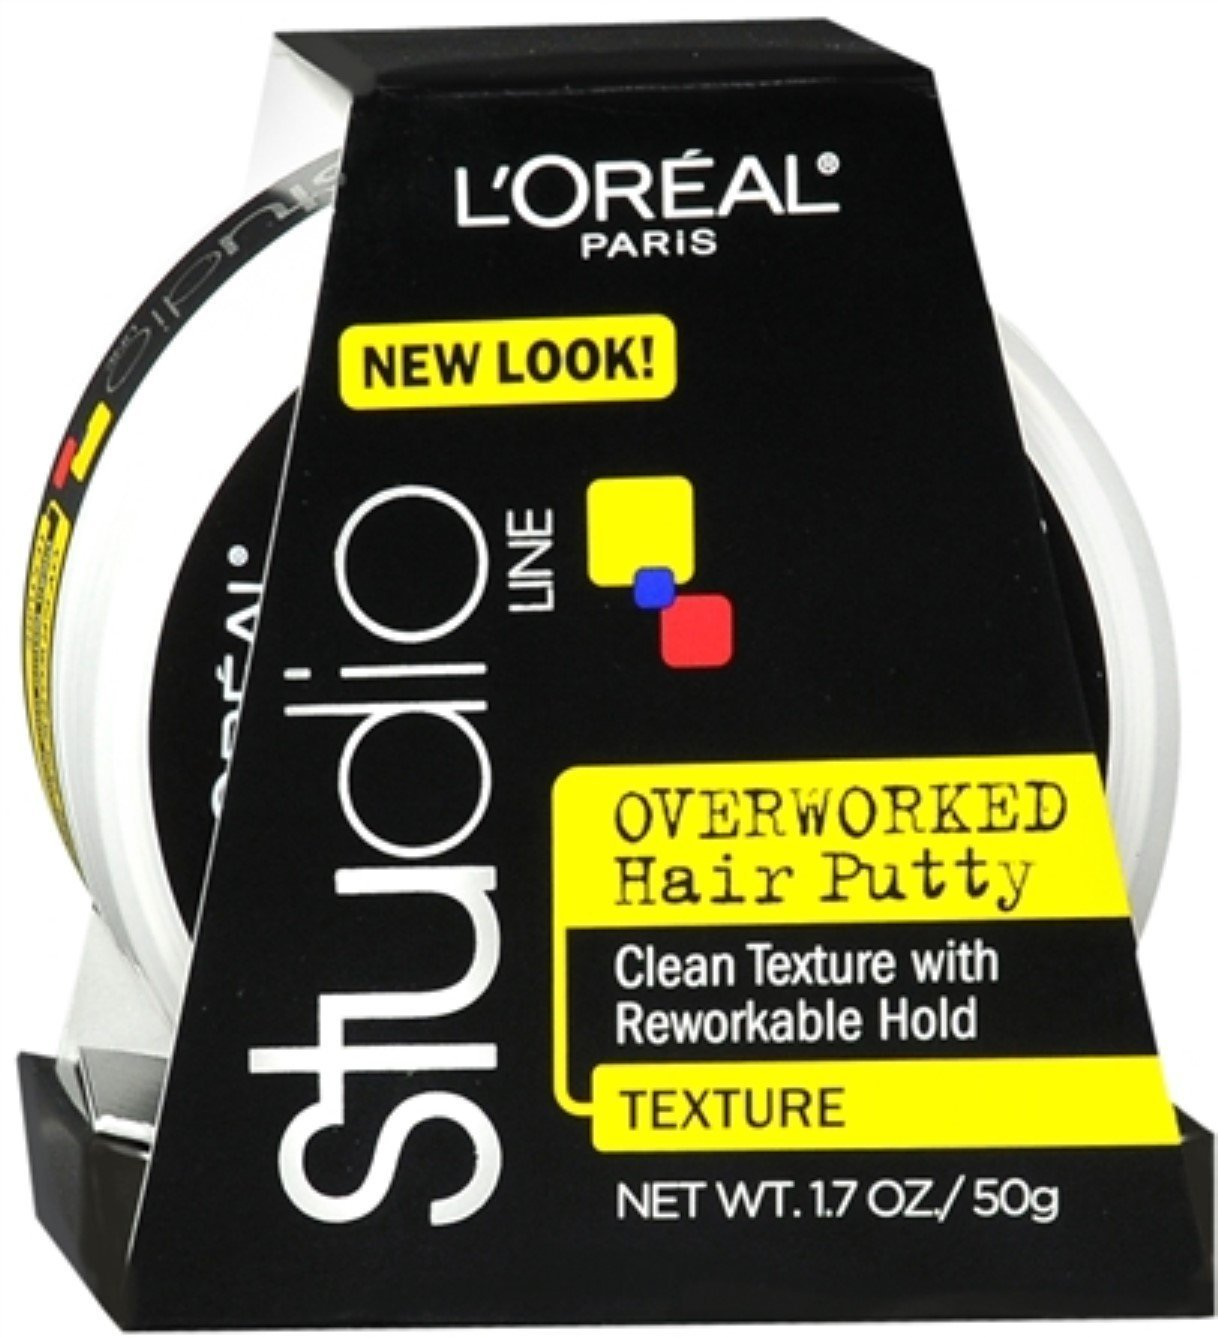 L'oreal Paris Studio Line Texture and Control Overworked Hair Putty 1.7 Oz (2 Pack) L' oreal Paris Inc